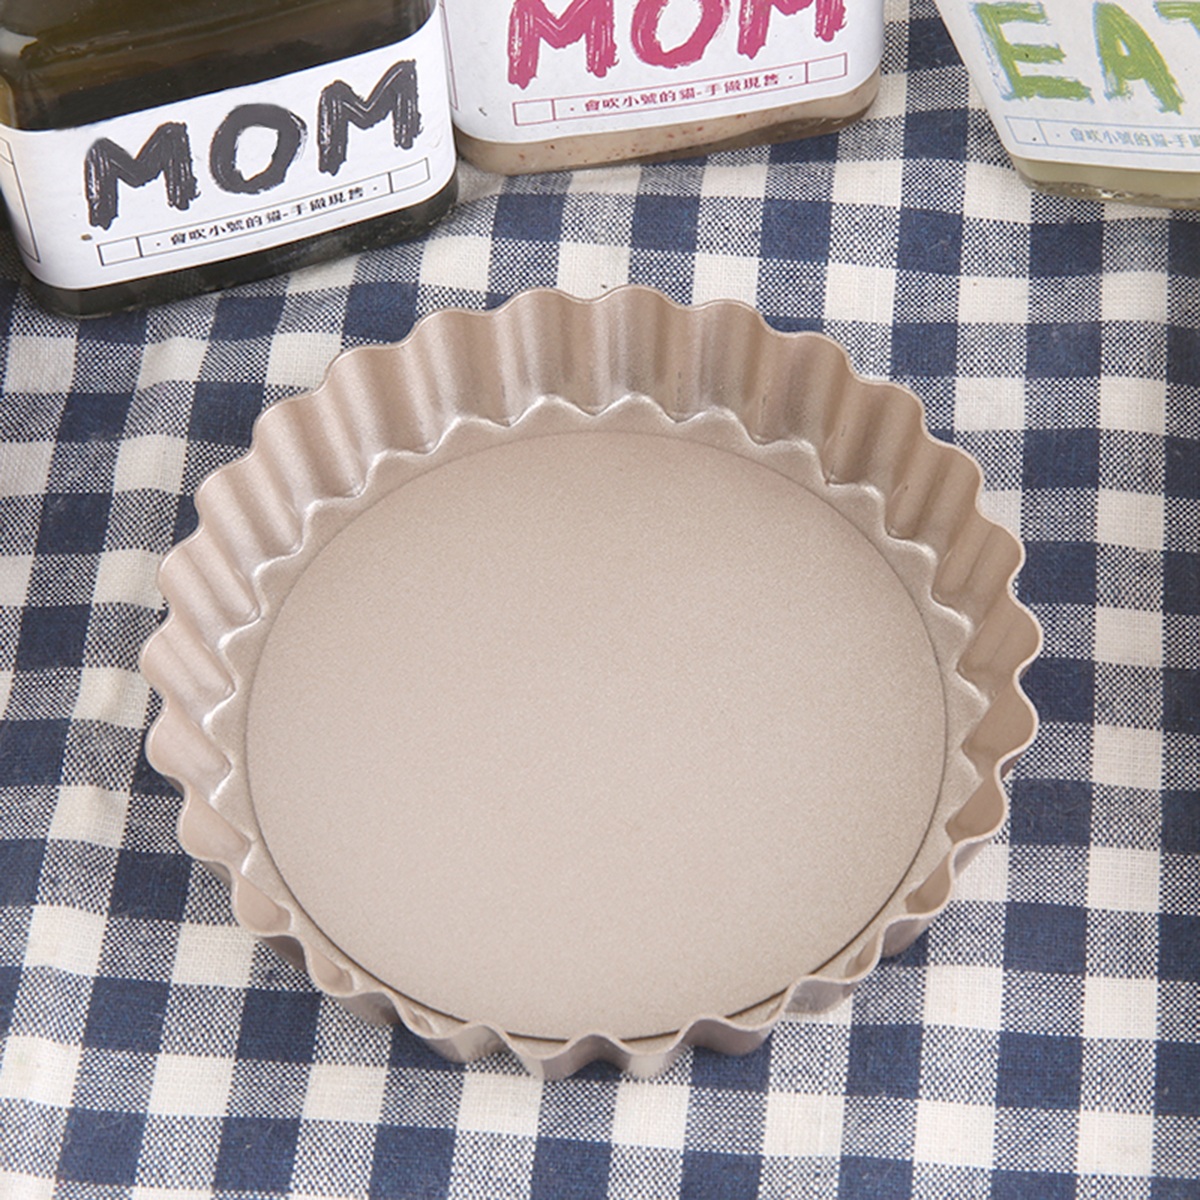 2PCS 4'' Pie Pan Mold Baking Removable Bottom Nonstick Round Shape by